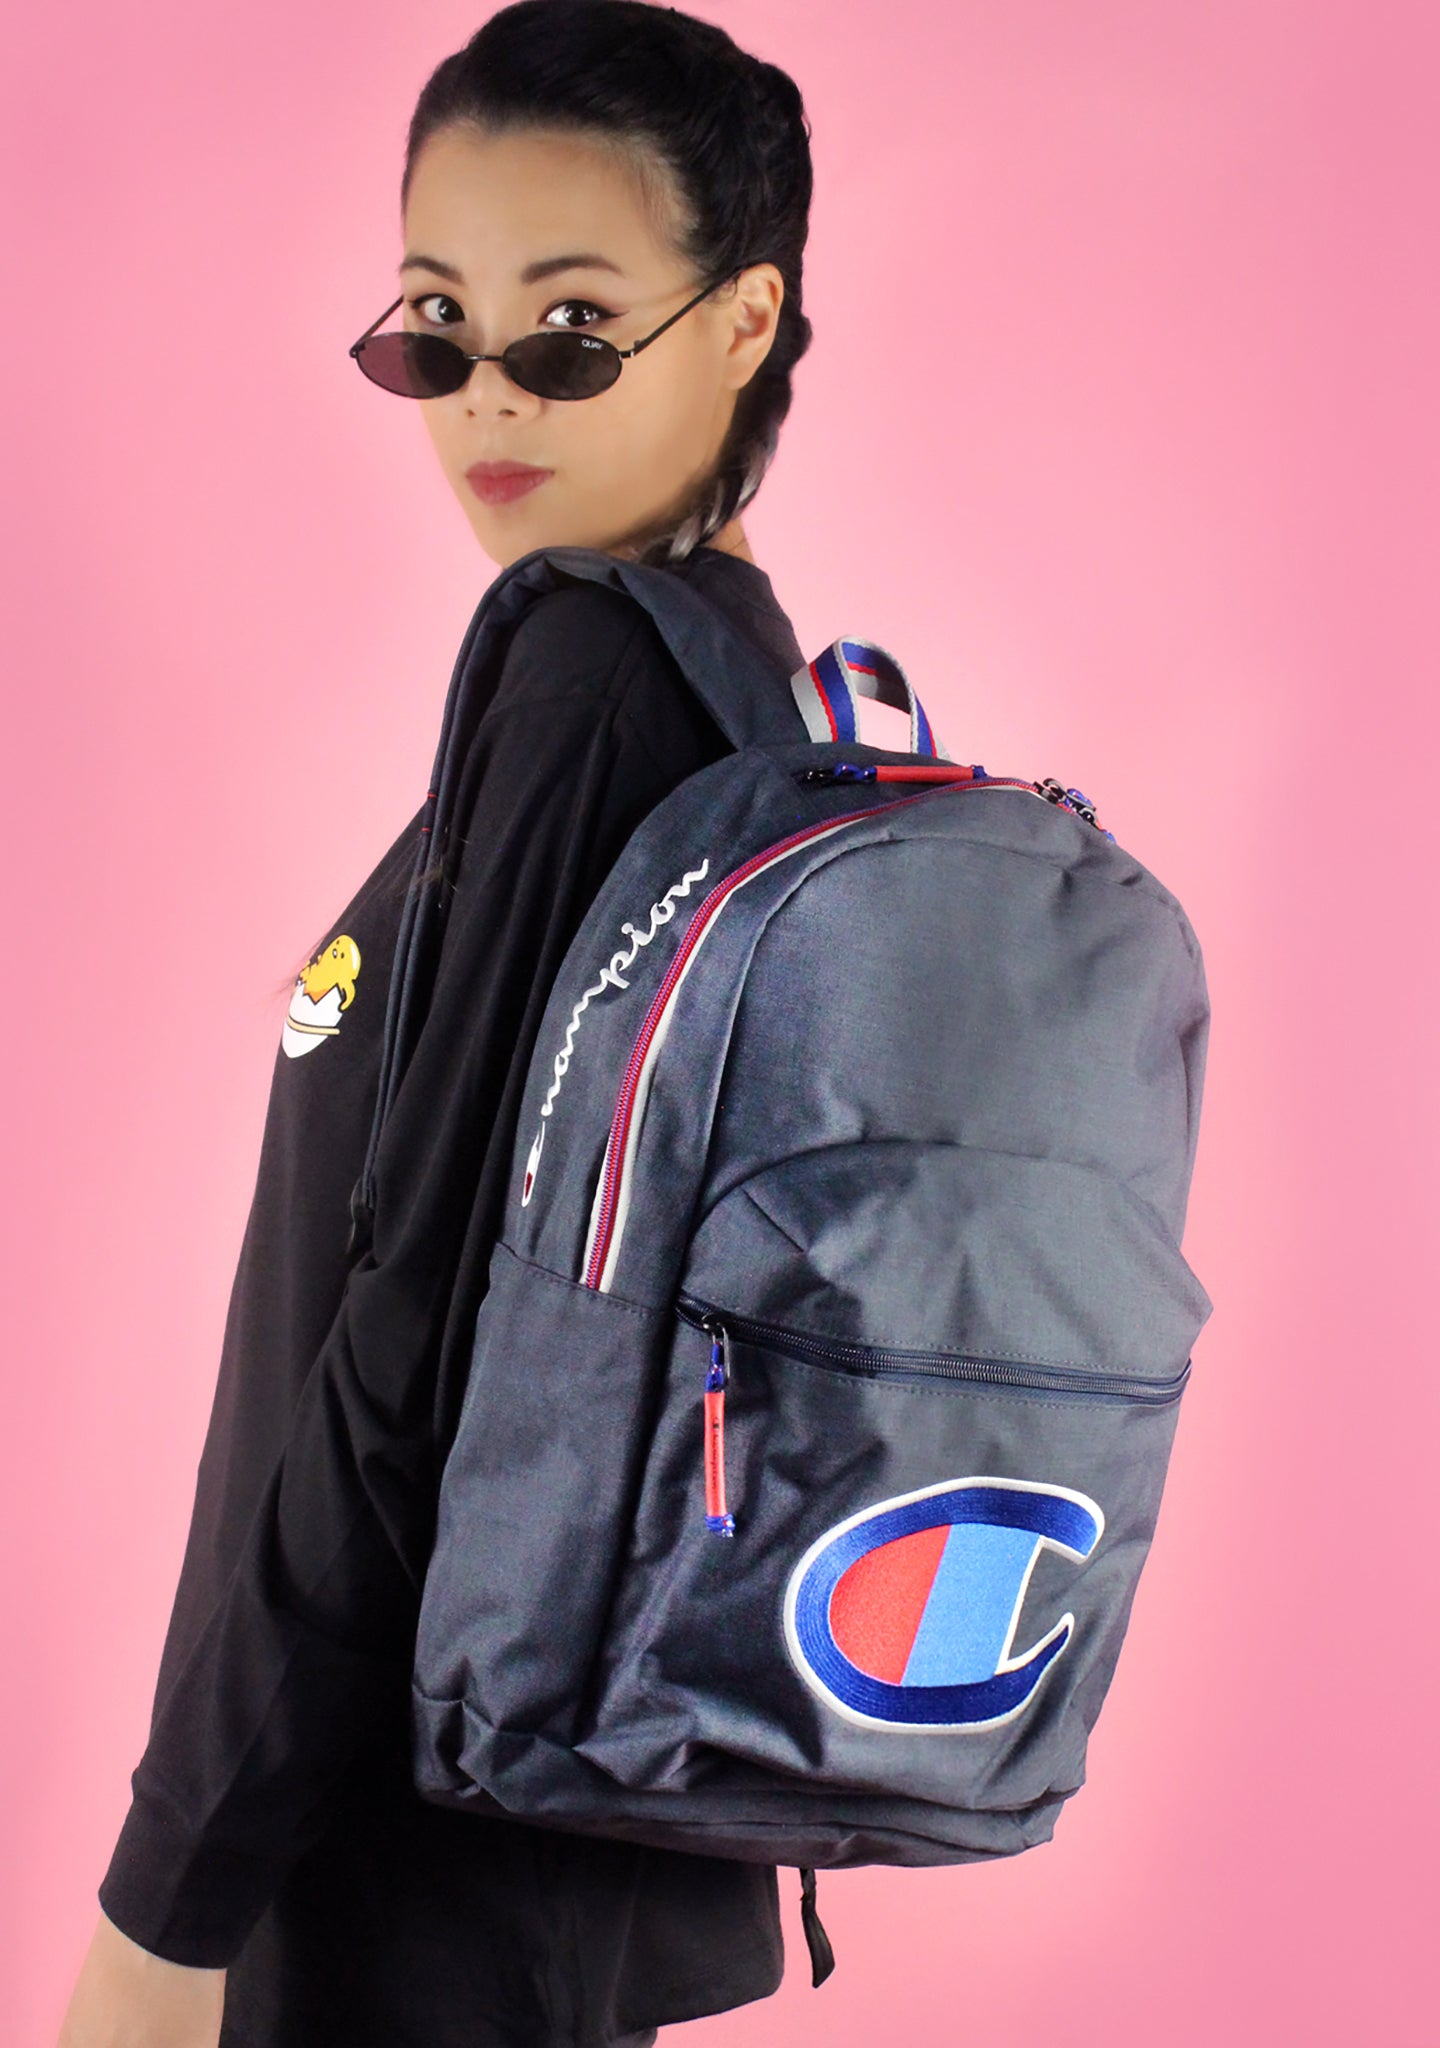 Supercize Backpack in Navy